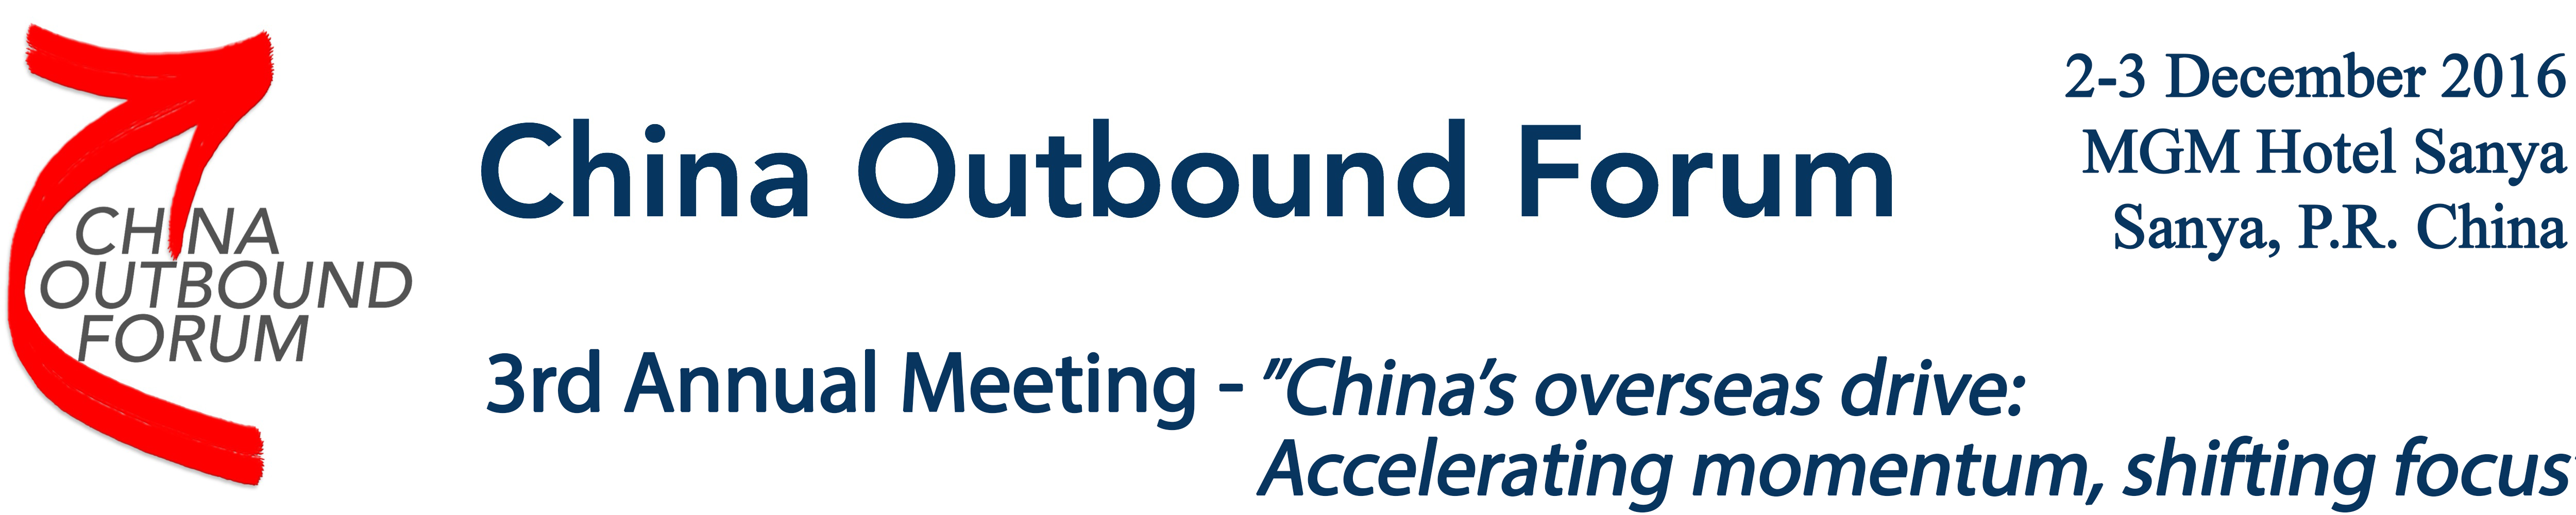 China Outbound Forum